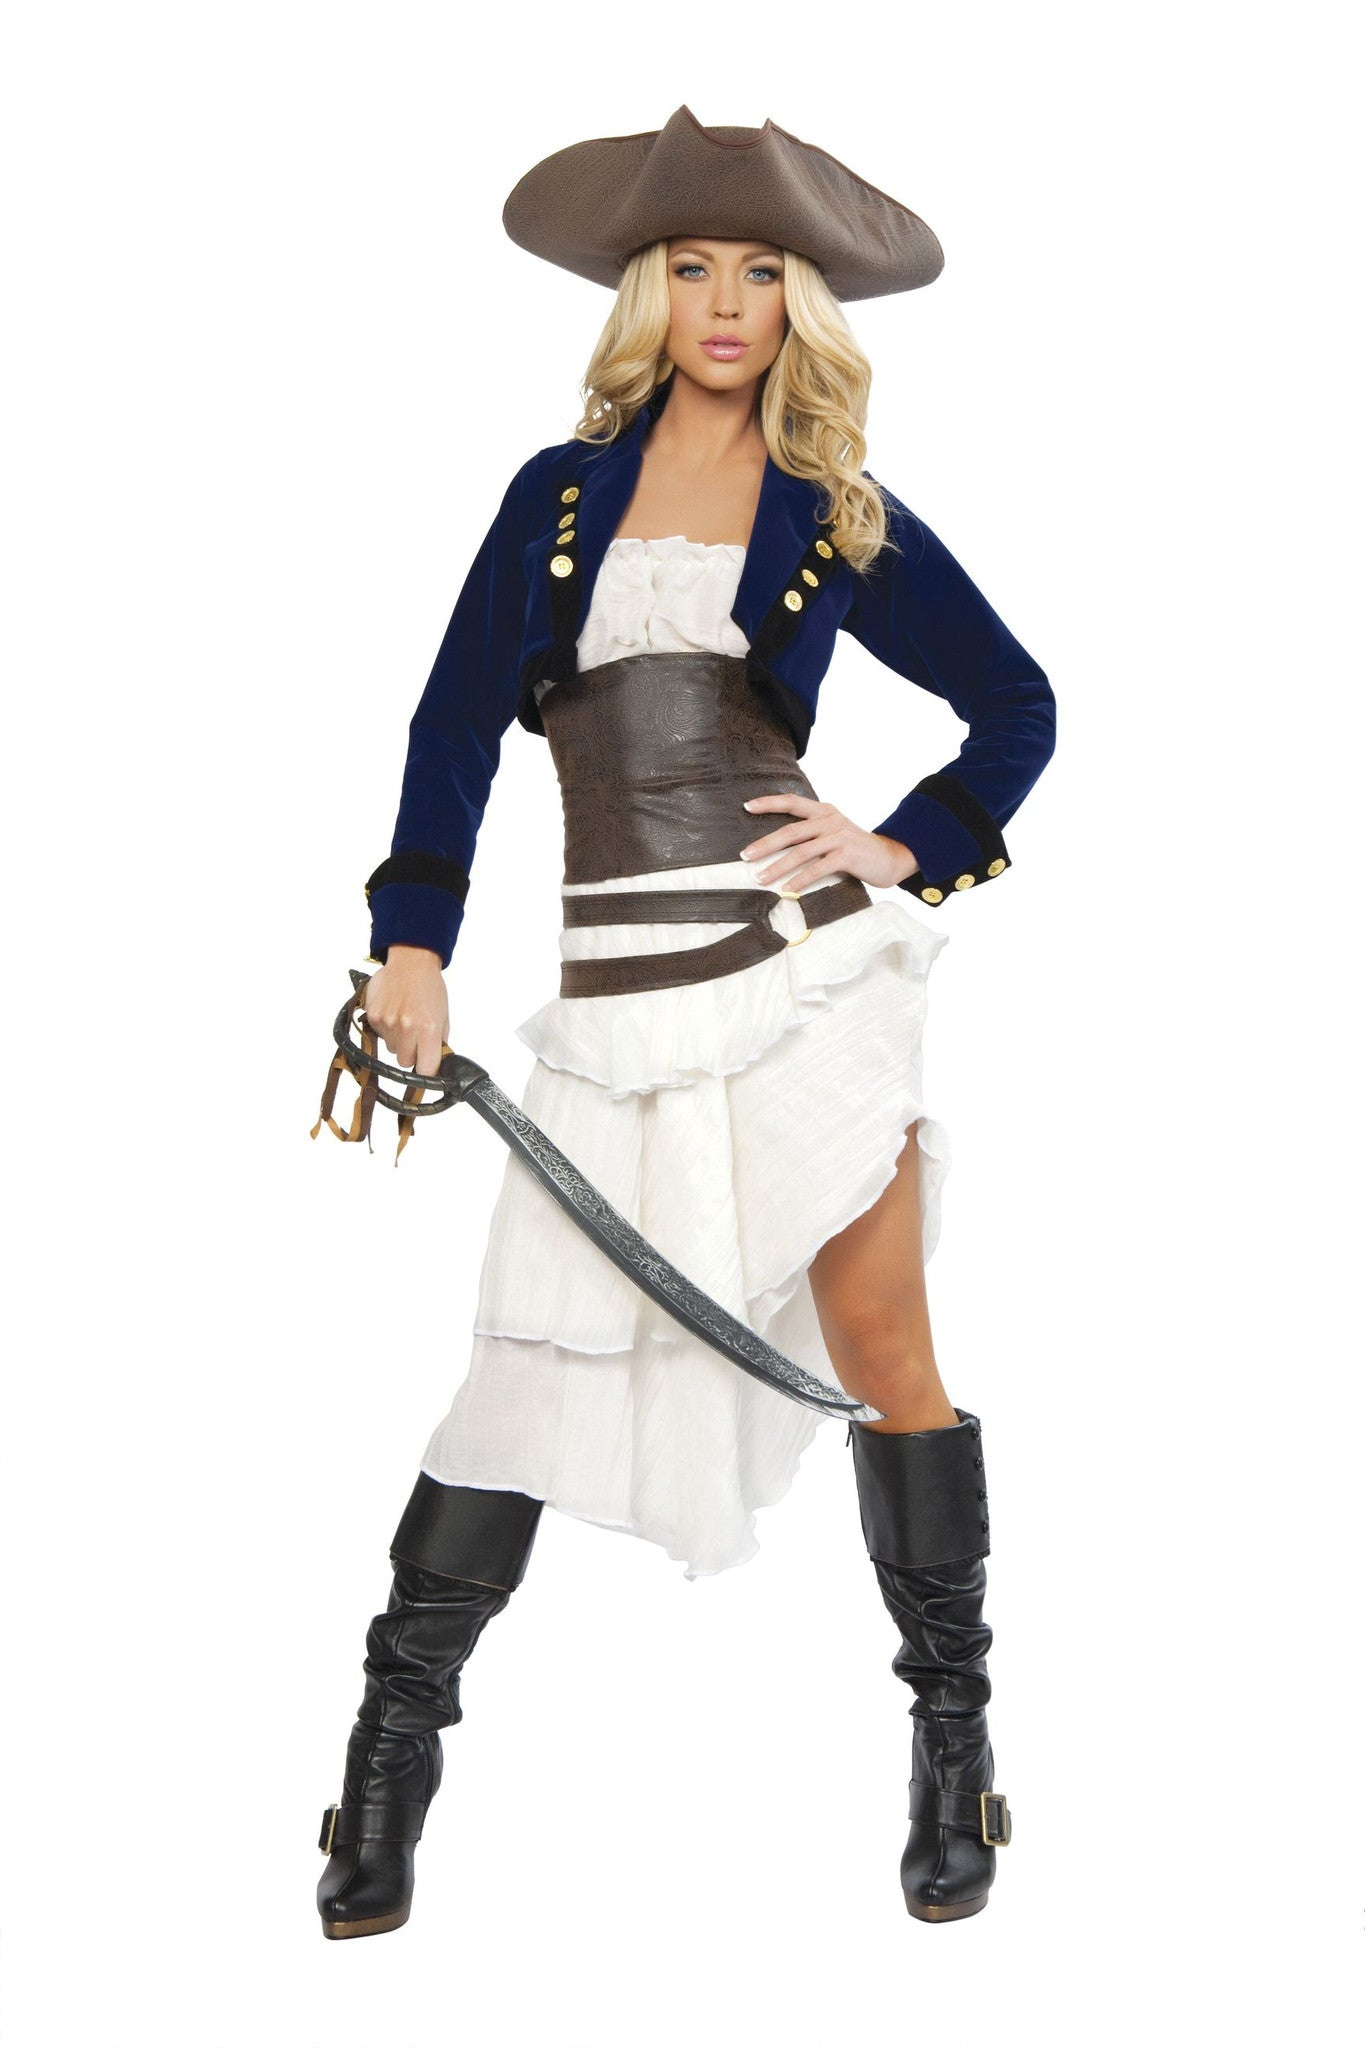 4245 - Deluxe 6pc Colonial Pirate ${description} | Roma Costume and Roma Confidential wholesale manufacturer of Women Apparel bulk world wide wholesale and world wide drop ship services for Adult Halloween Costumes, Sexy and Elegant Lingerie, Rave Clothing, Club wear, and Christmas Costumes. Costumes, Roma Costume, Inc., Roma Costume, Roma Confidential, Wholesale clothing, drop ship, drop ship service, Wholesale Lingerie, Wholesale Adult Halloween Costumes, Rave Clothing, EDM Clothing, Festival Wear, Christmas Costumes, Clubwear, Club wear.